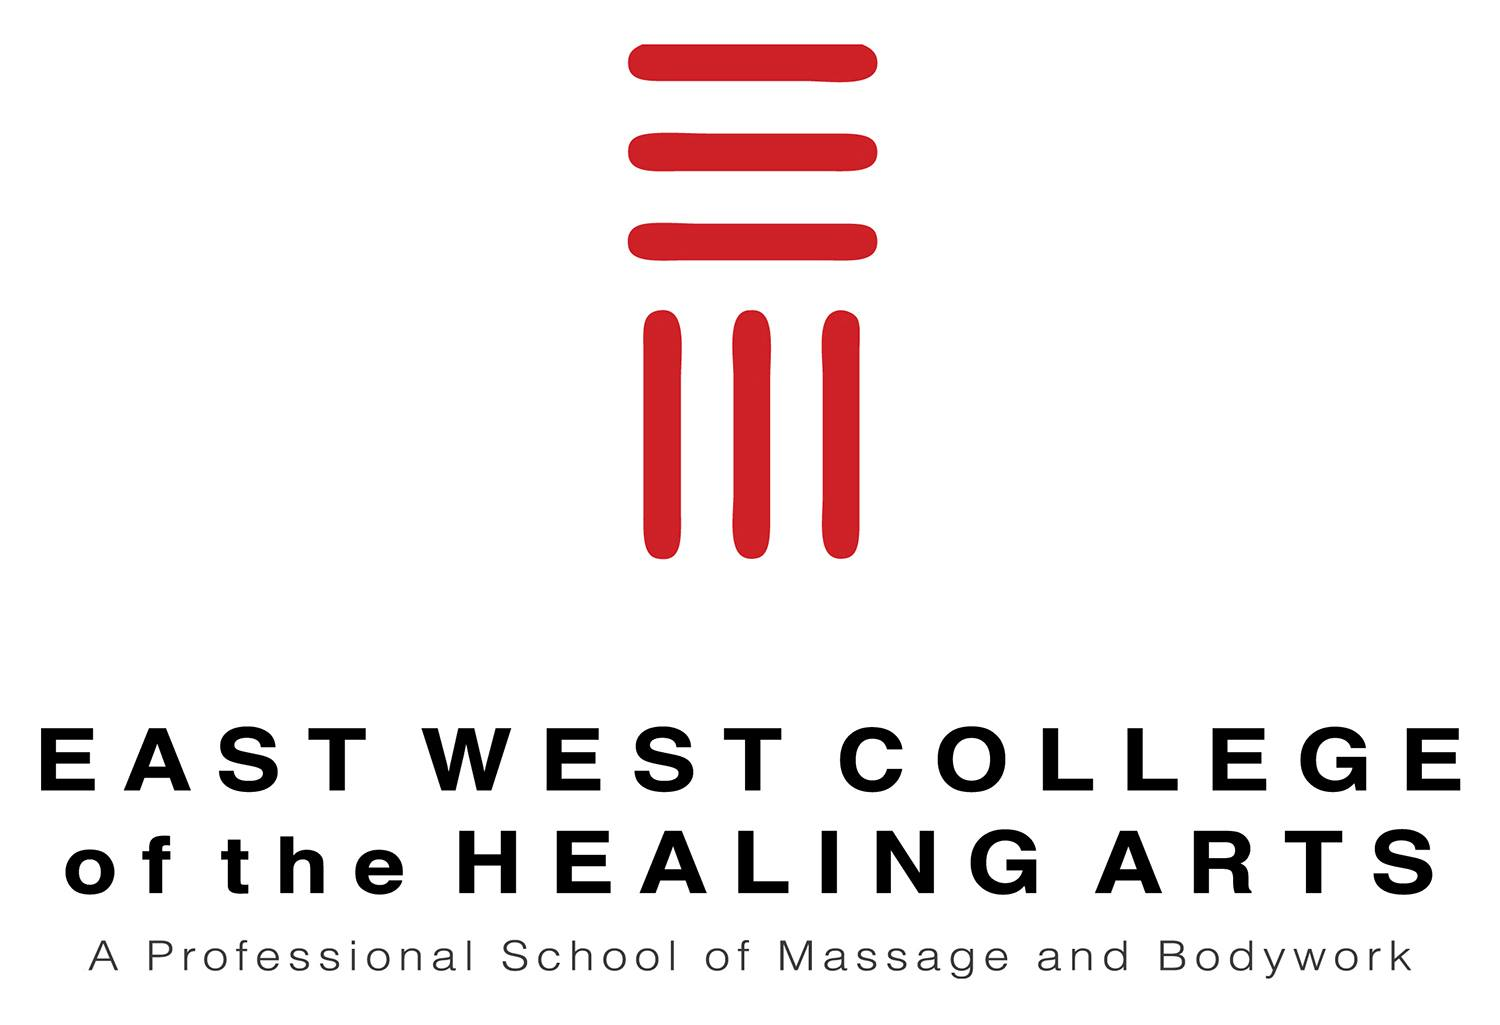 East West College of the Healing Arts